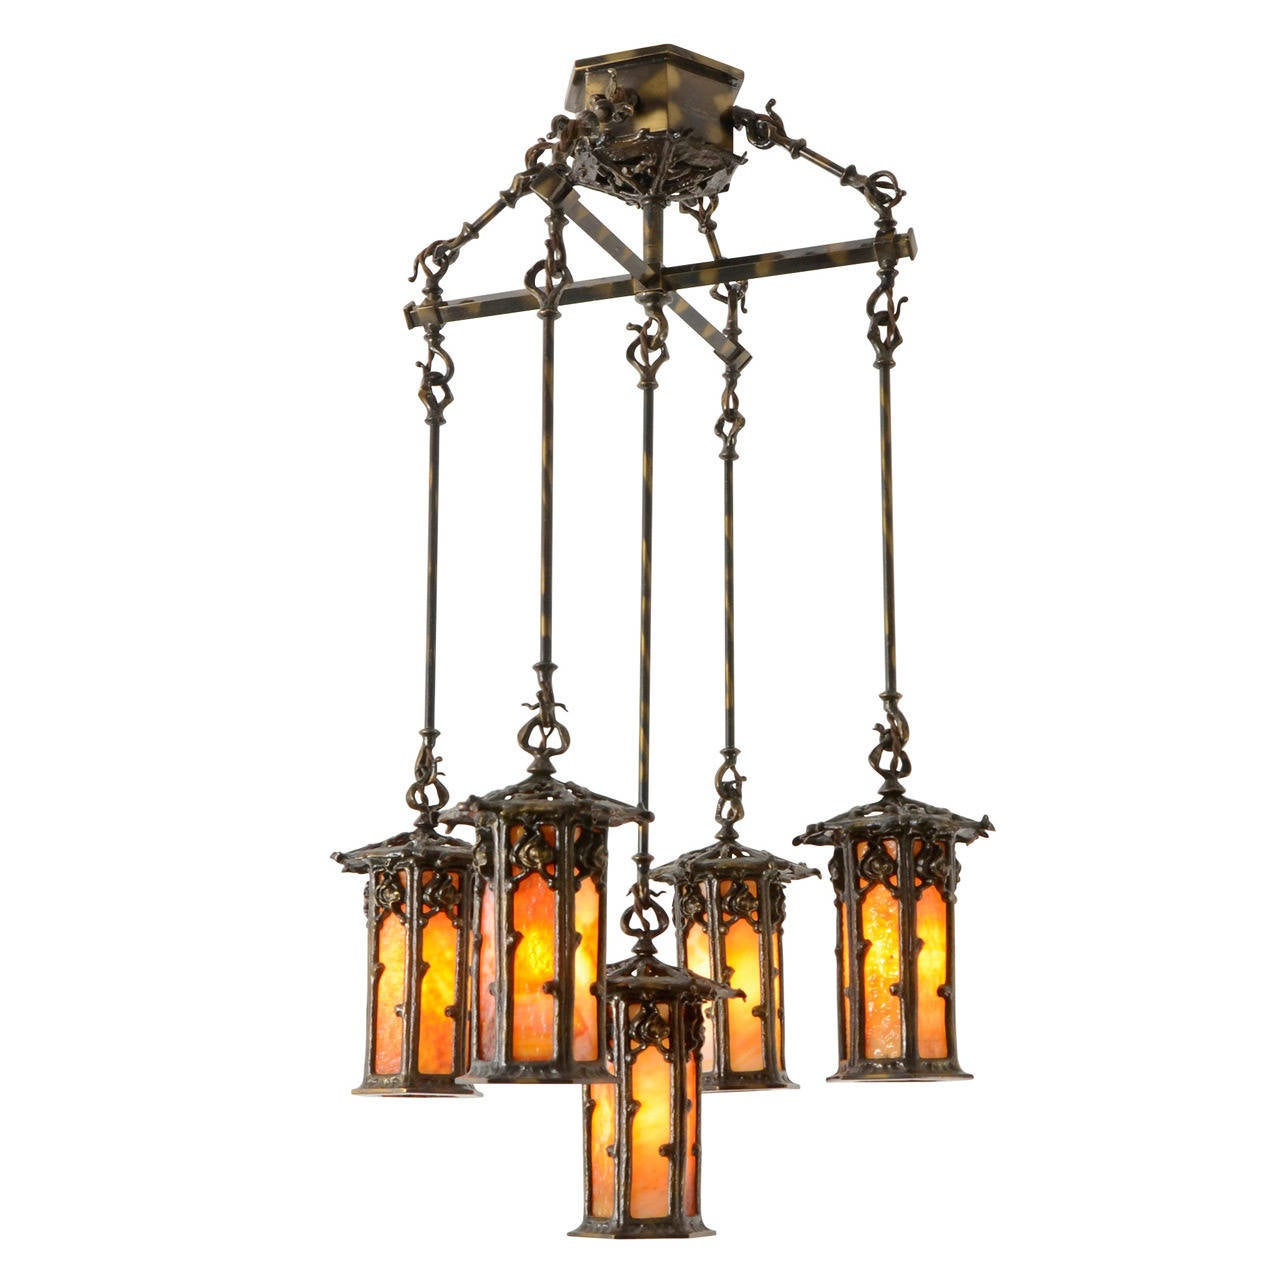 Historic markham house five light chandelier circa 1911 at 1stdibs - Circa lighting chandeliers ...